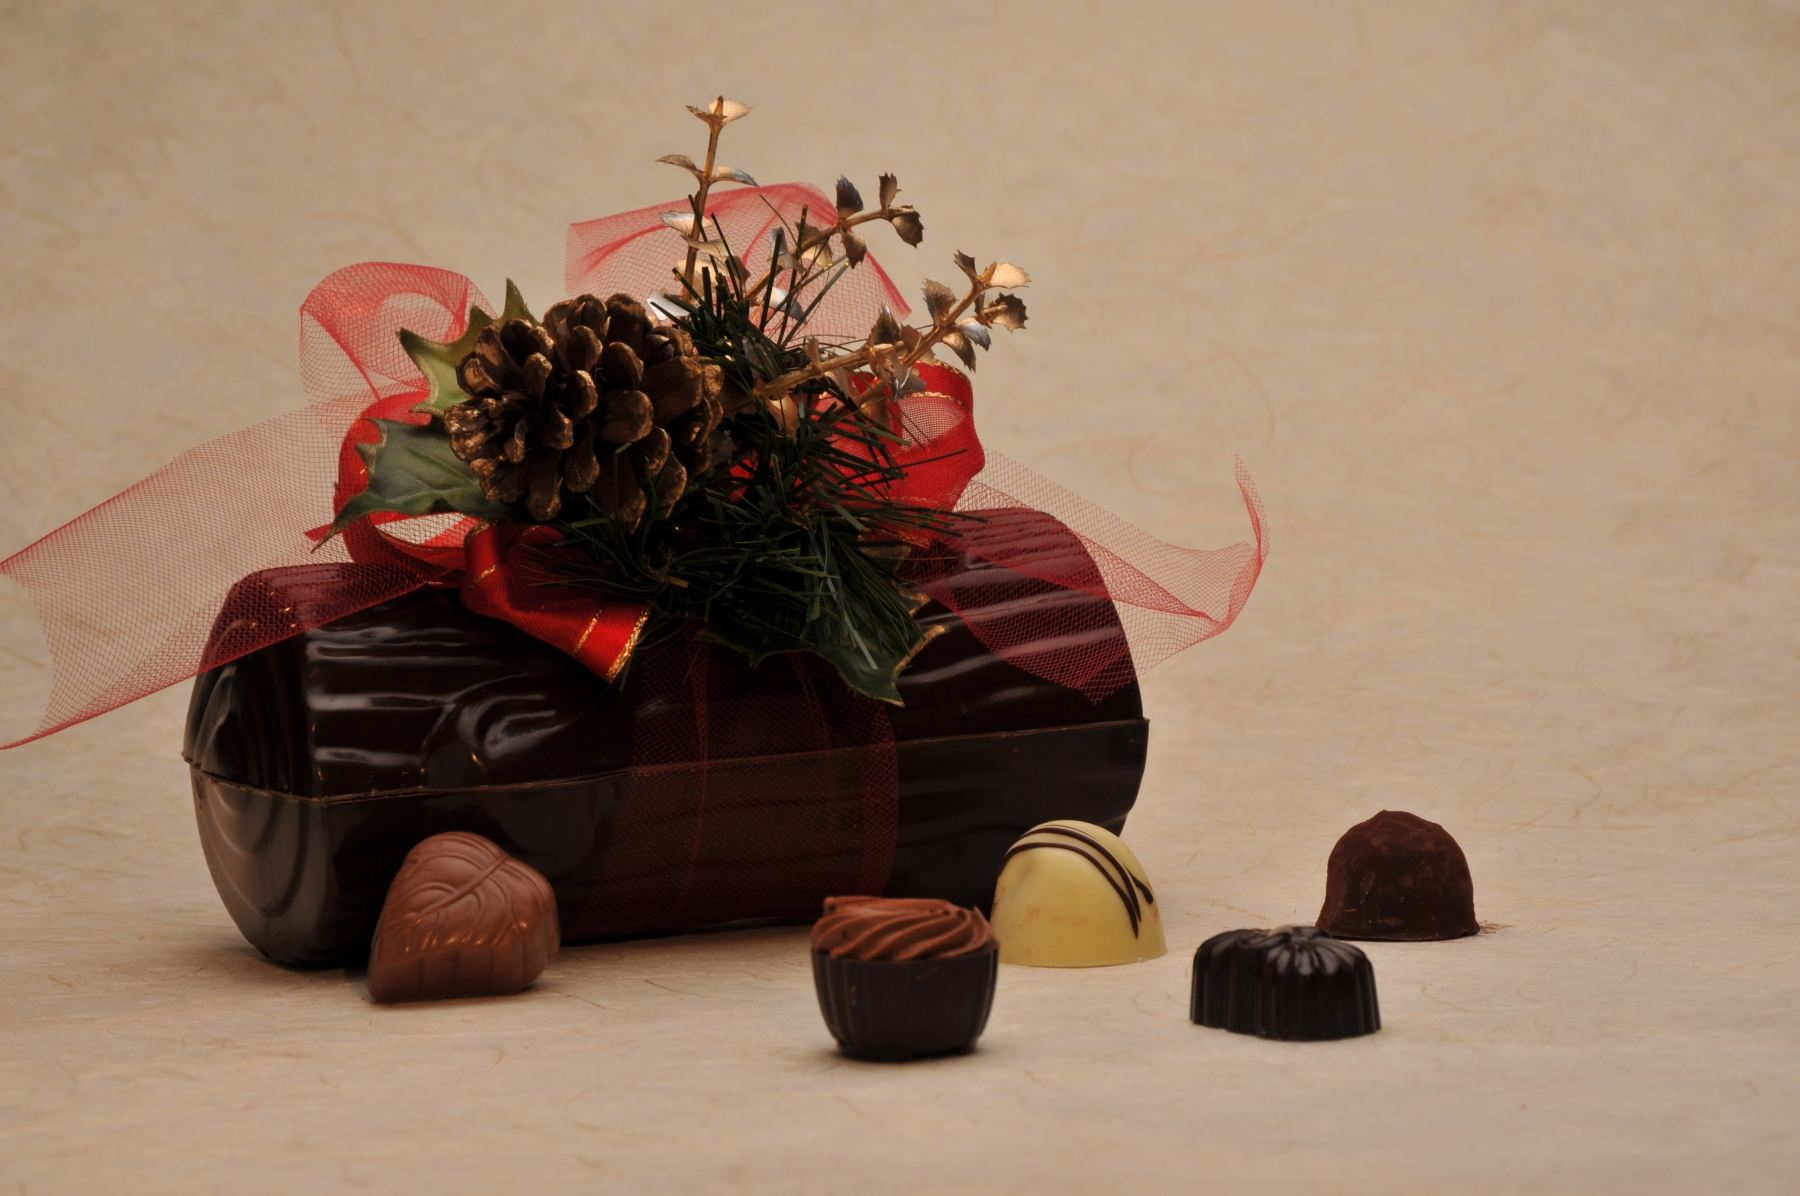 Chocolate Yule Log filled with 1/2 lb. of our Signature Chocolates, finished with a handmade holiday floral cluster.